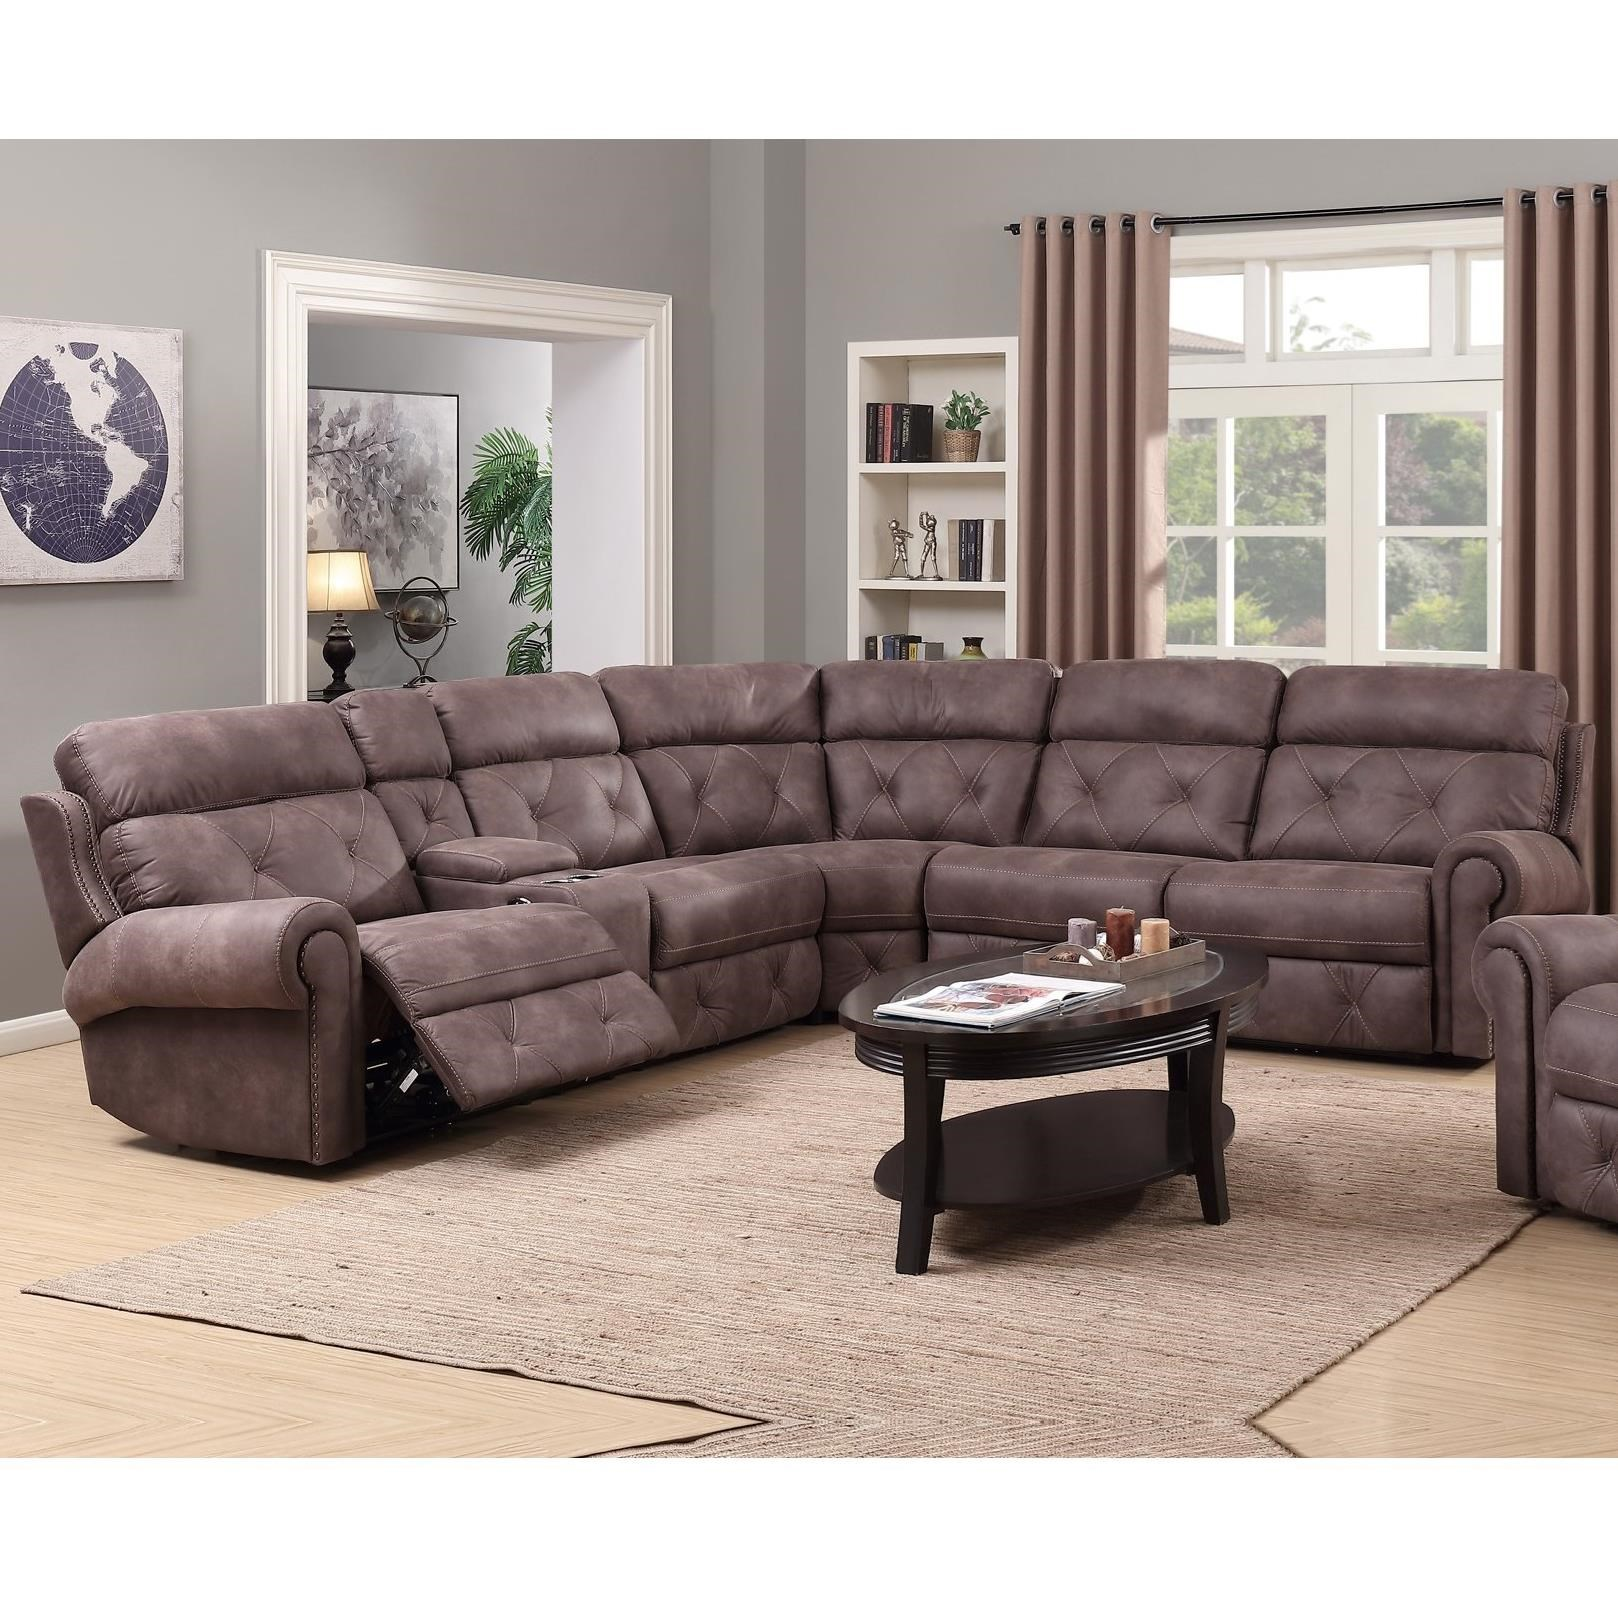 couches your sectionals deep modern costco sofas leather furniture lea ideas for recliner macys sets fill comfy living reclining room decorating home sofa sectional with